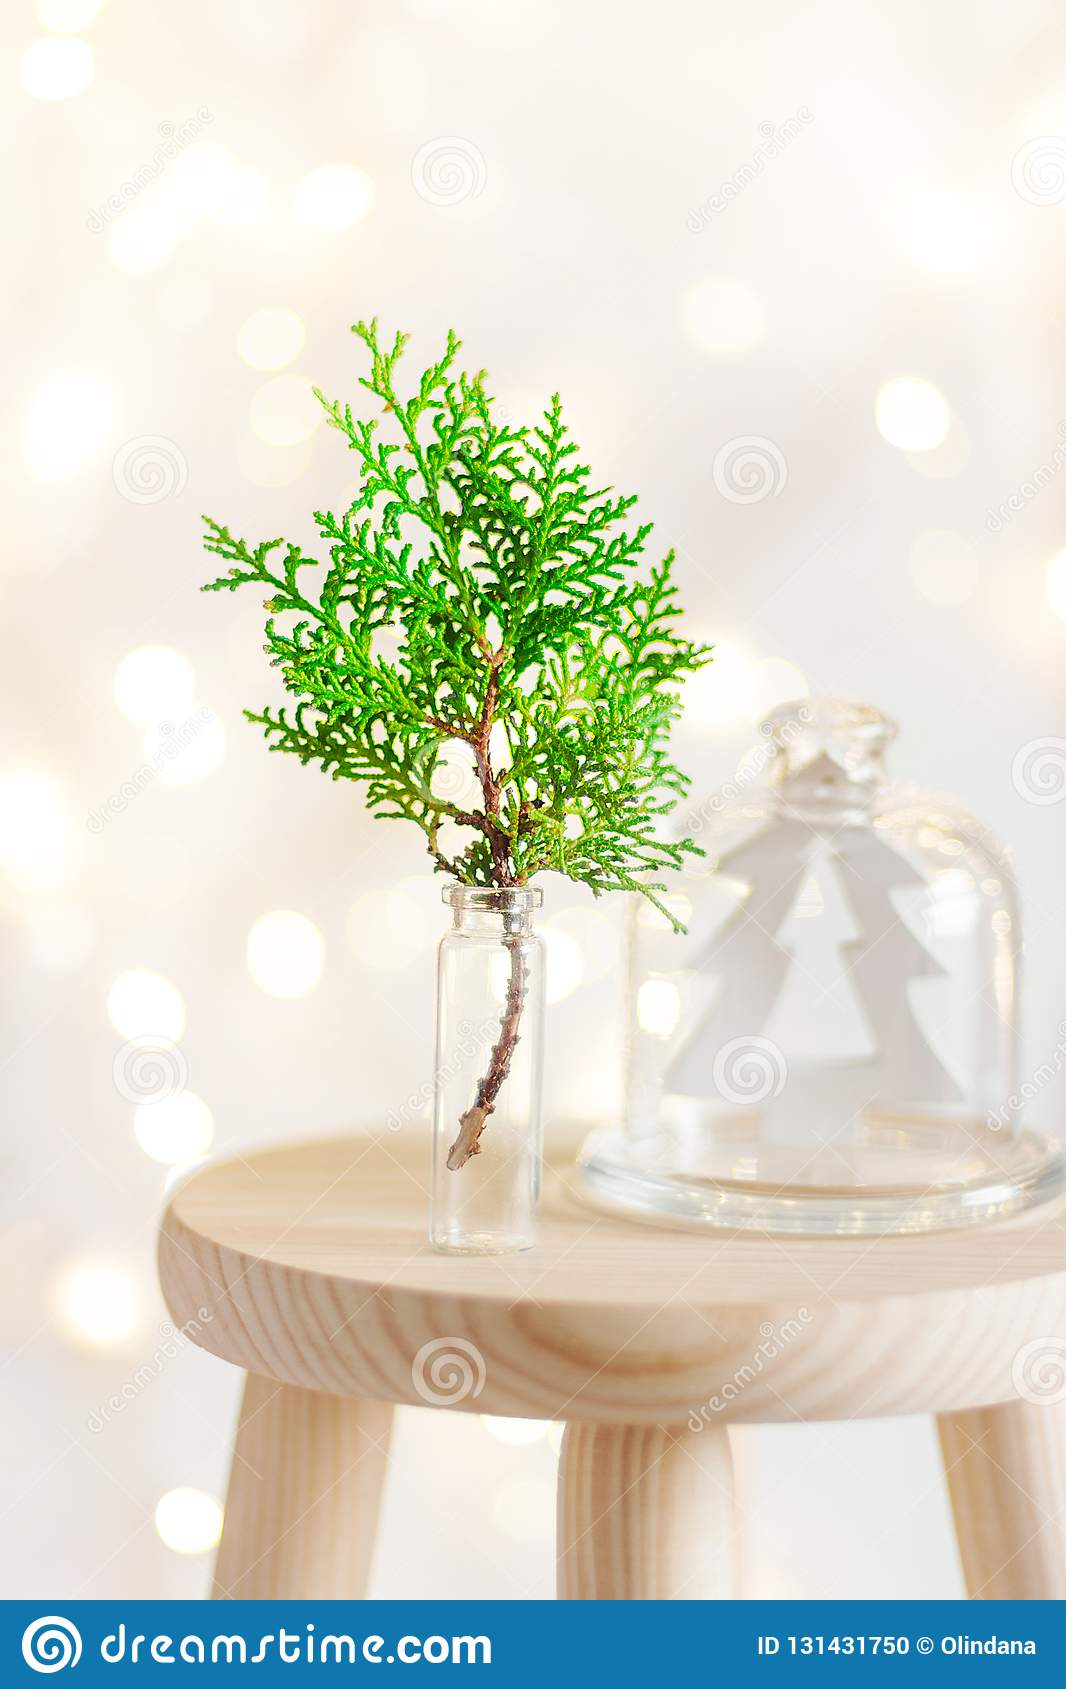 Christmas New Year home interior decoration background. Green juniper twig in glass wooden fir tree ornament in cloche dome jar